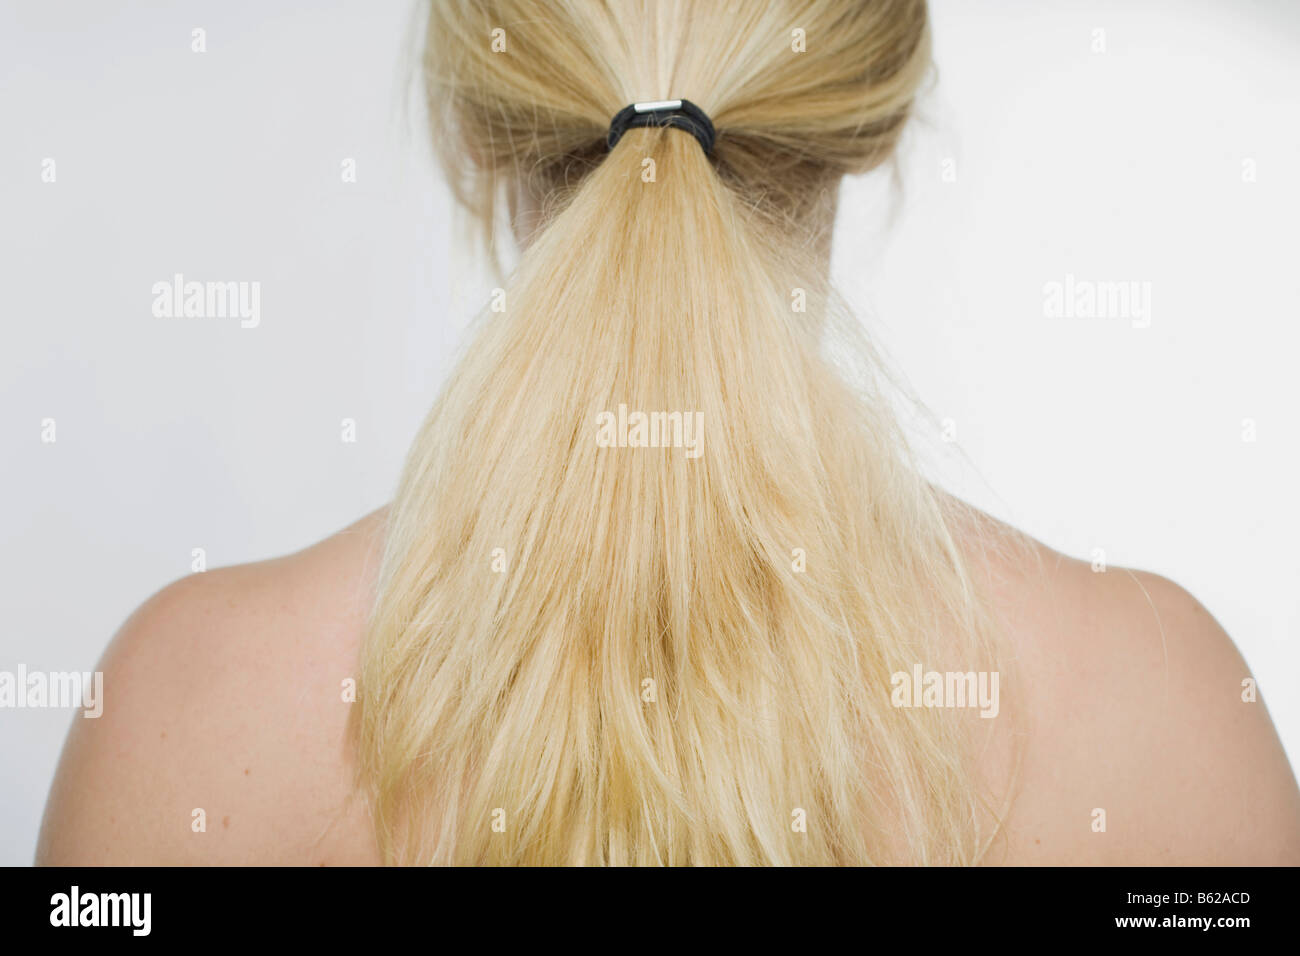 Young woman with a blonde pony-tail hanging over her shoulders - Stock Image